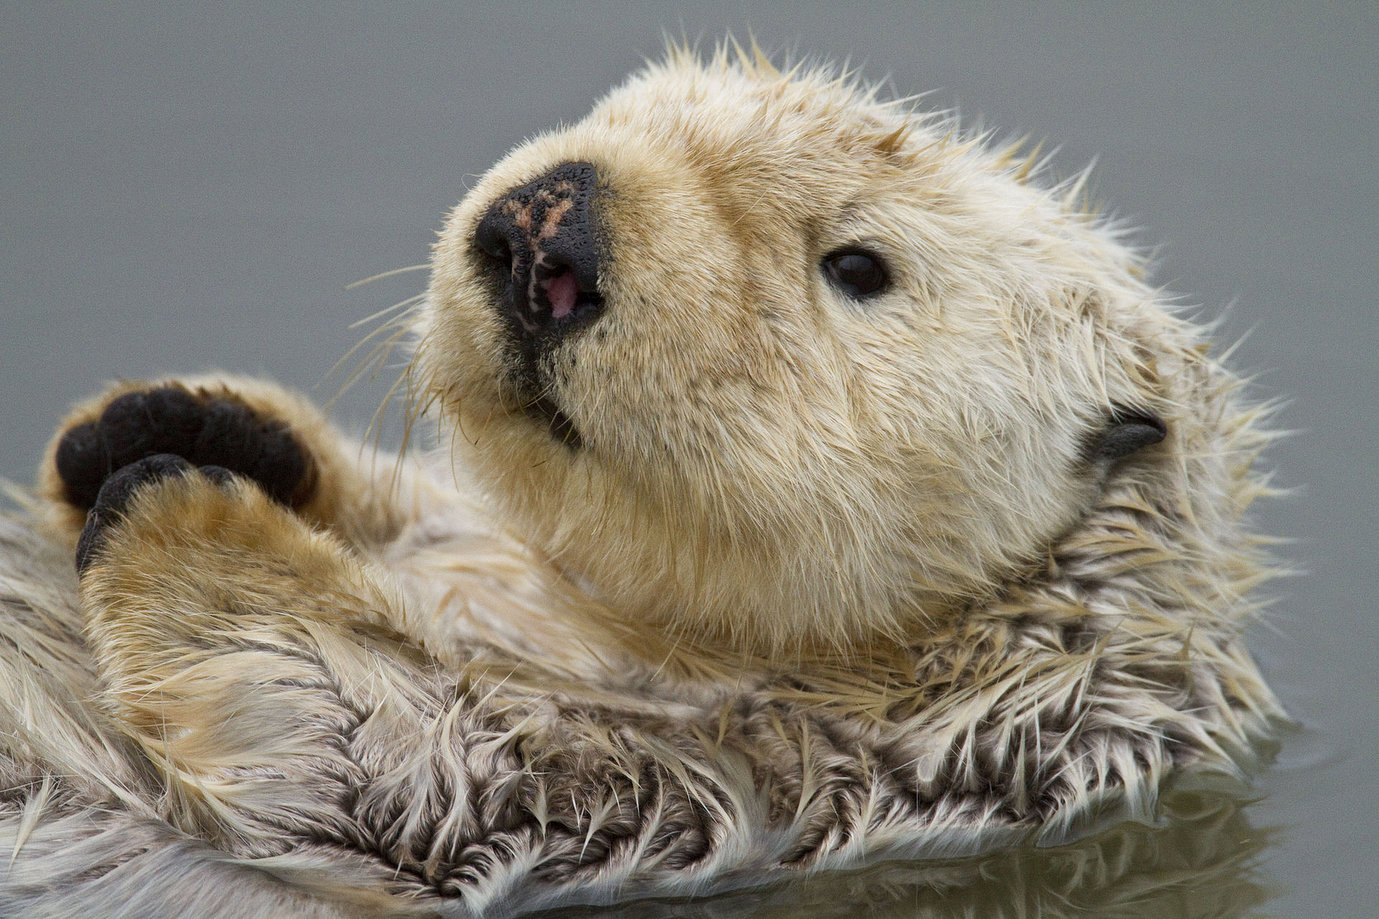 It's the First Day of Sea Otter Awareness Week!